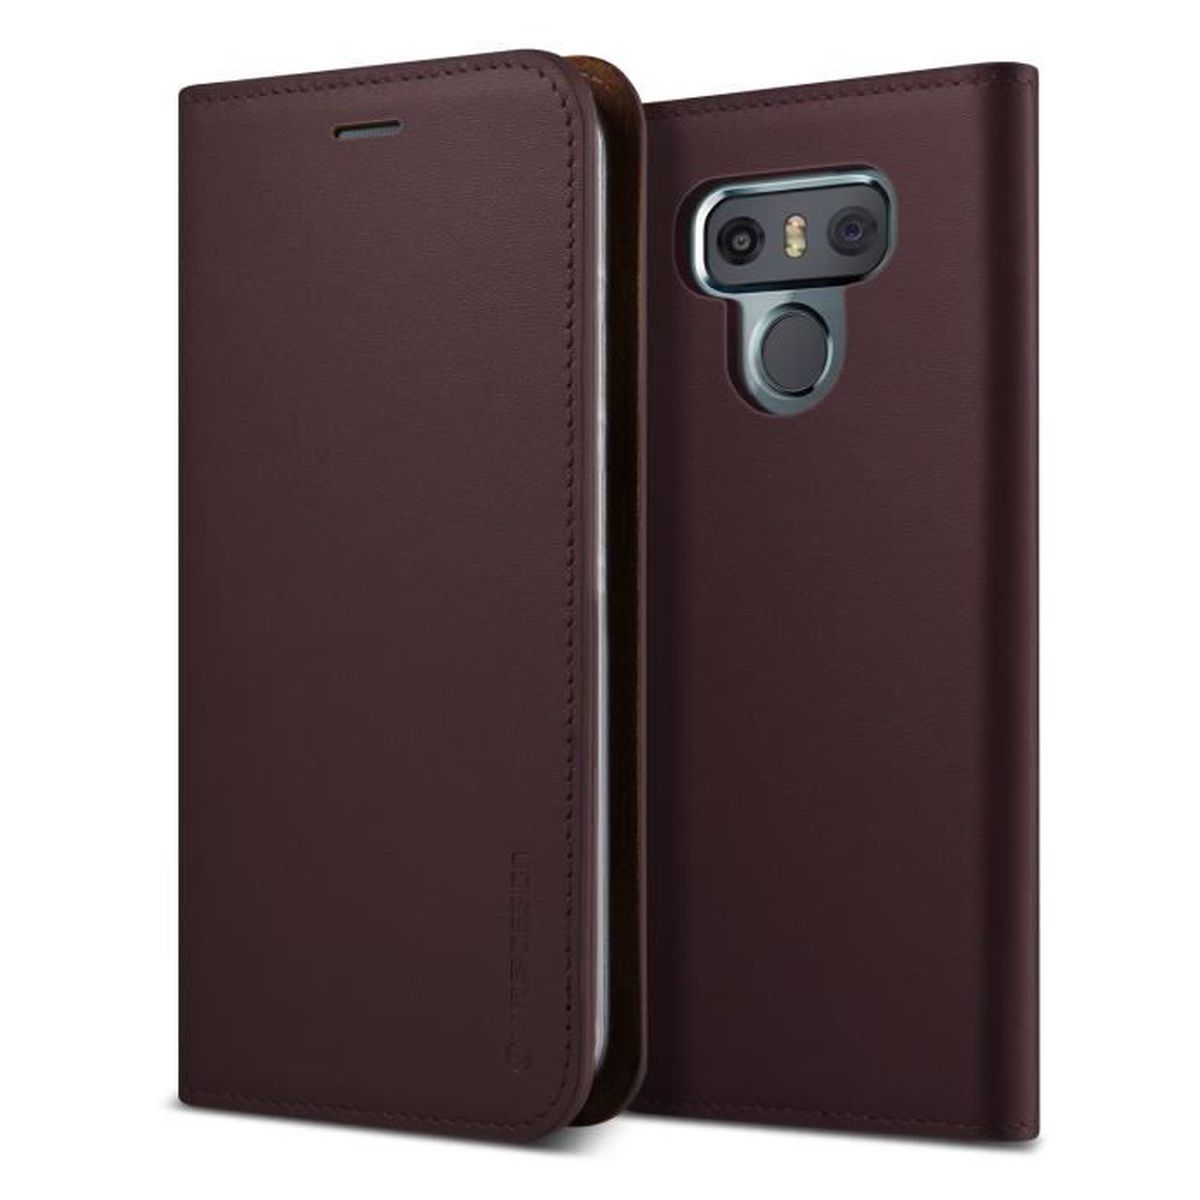 Tui housse lg g6 vrs design genuine leather case for Housse lg g6